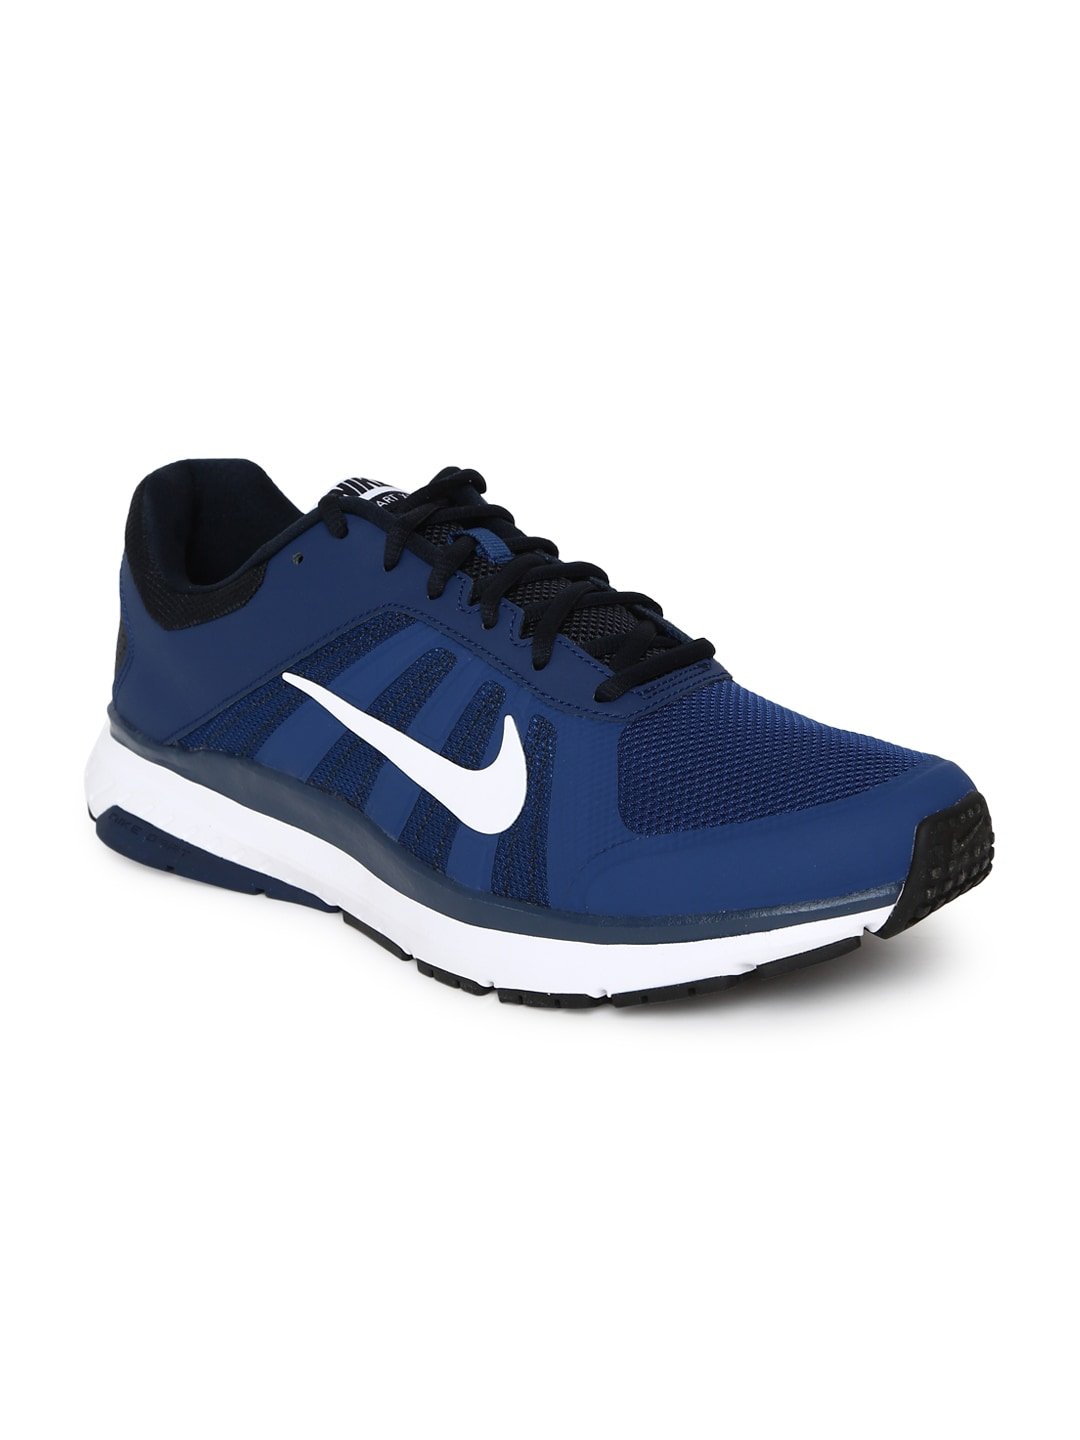 Navy In Blue Nike Online Shoes Buy vmn8ON0w